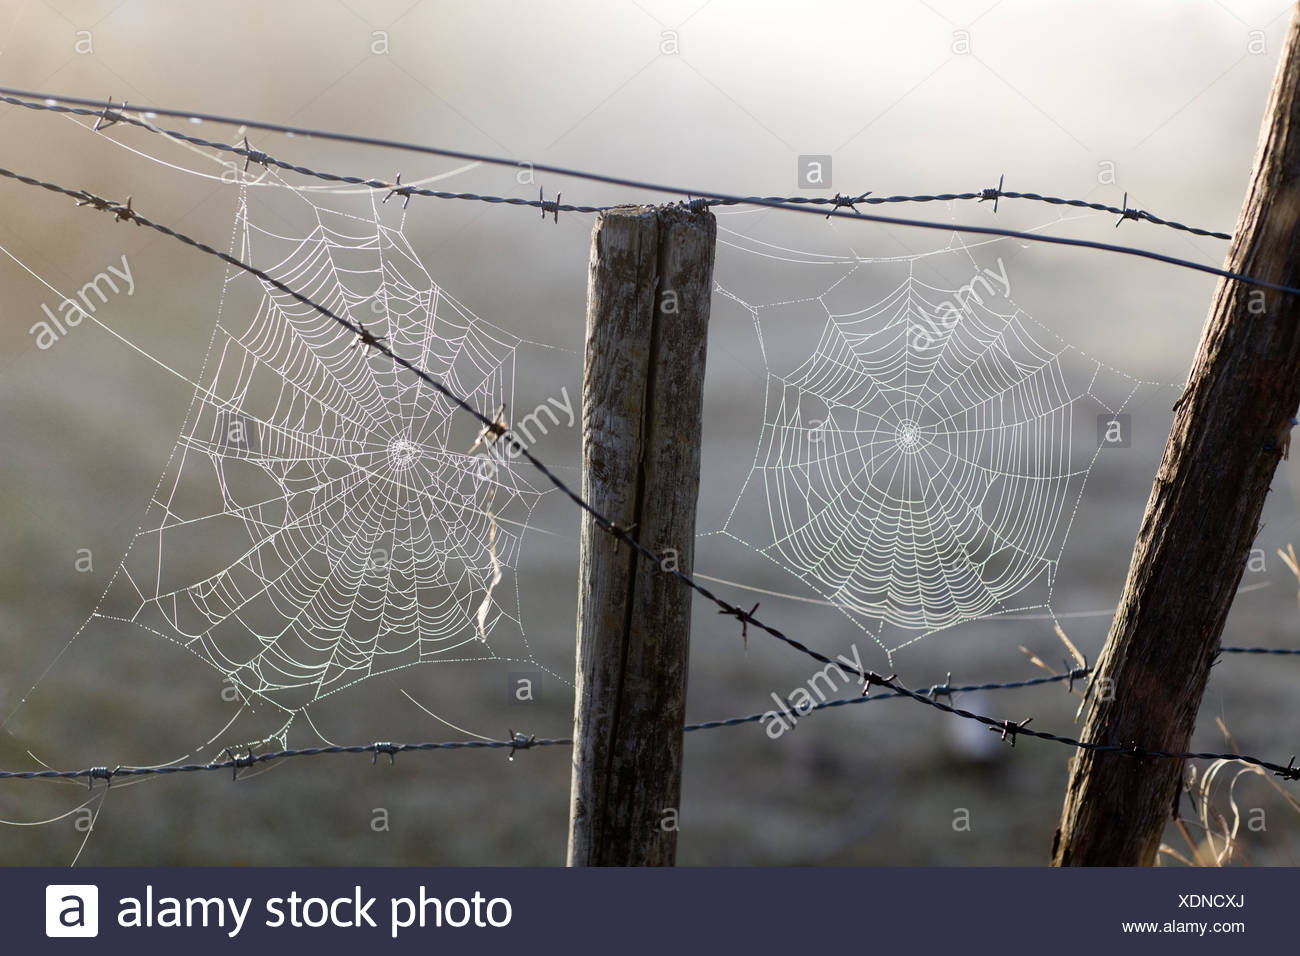 Spider´s web on barbed wire, Sweden Stock Photo: 283827562 - Alamy